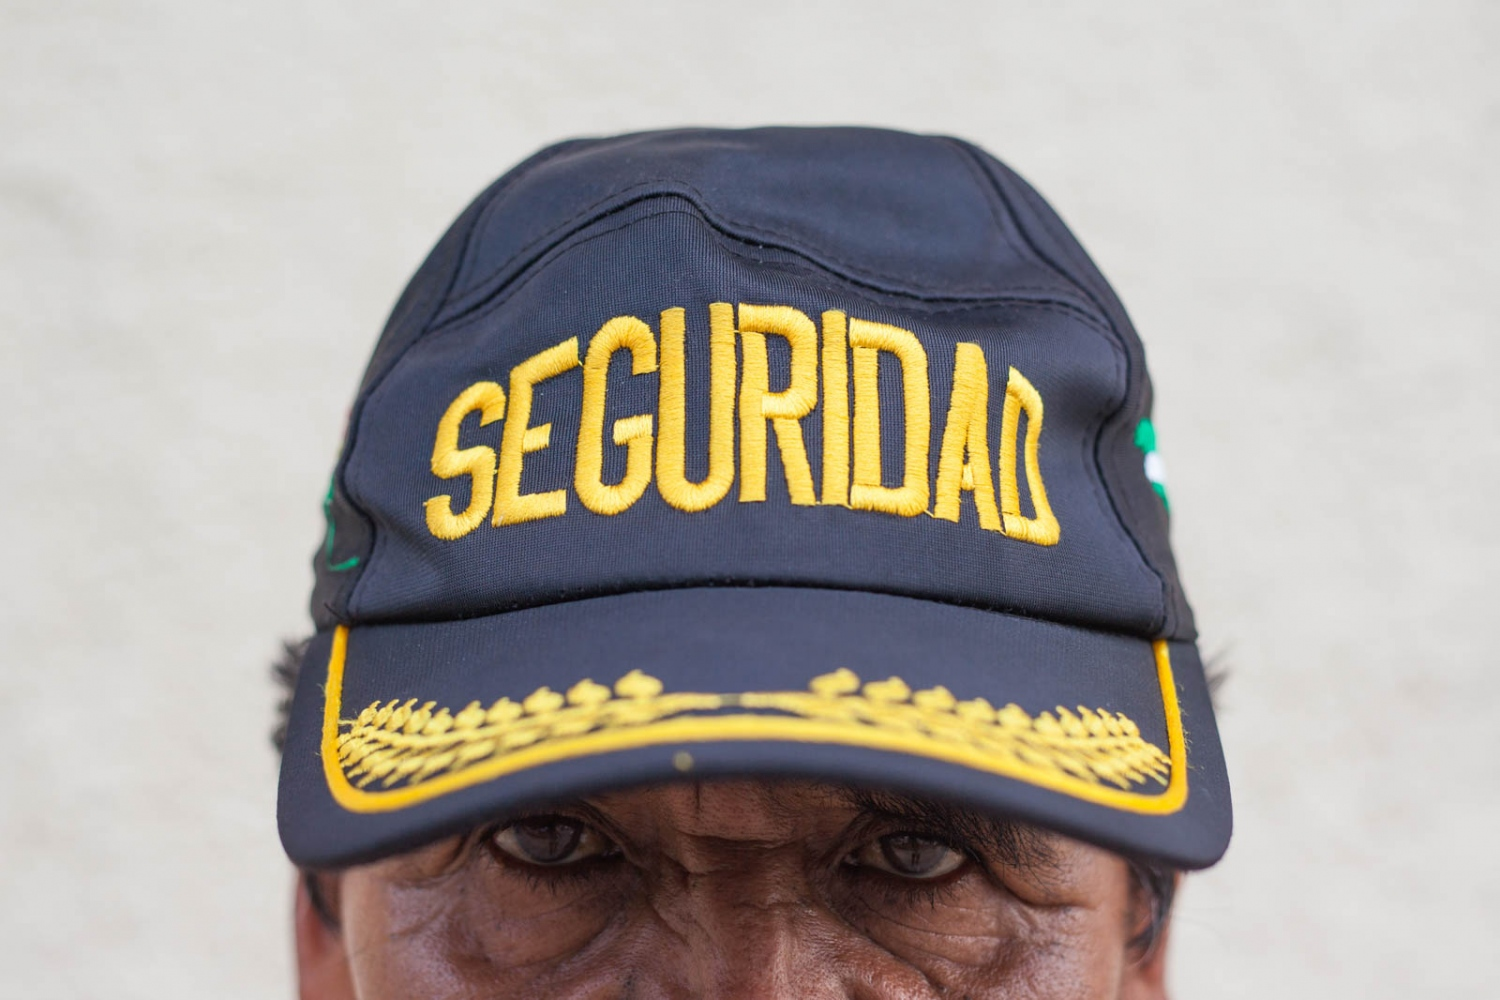 Art and Documentary Photography - Loading SantaSeguridad-5.jpg